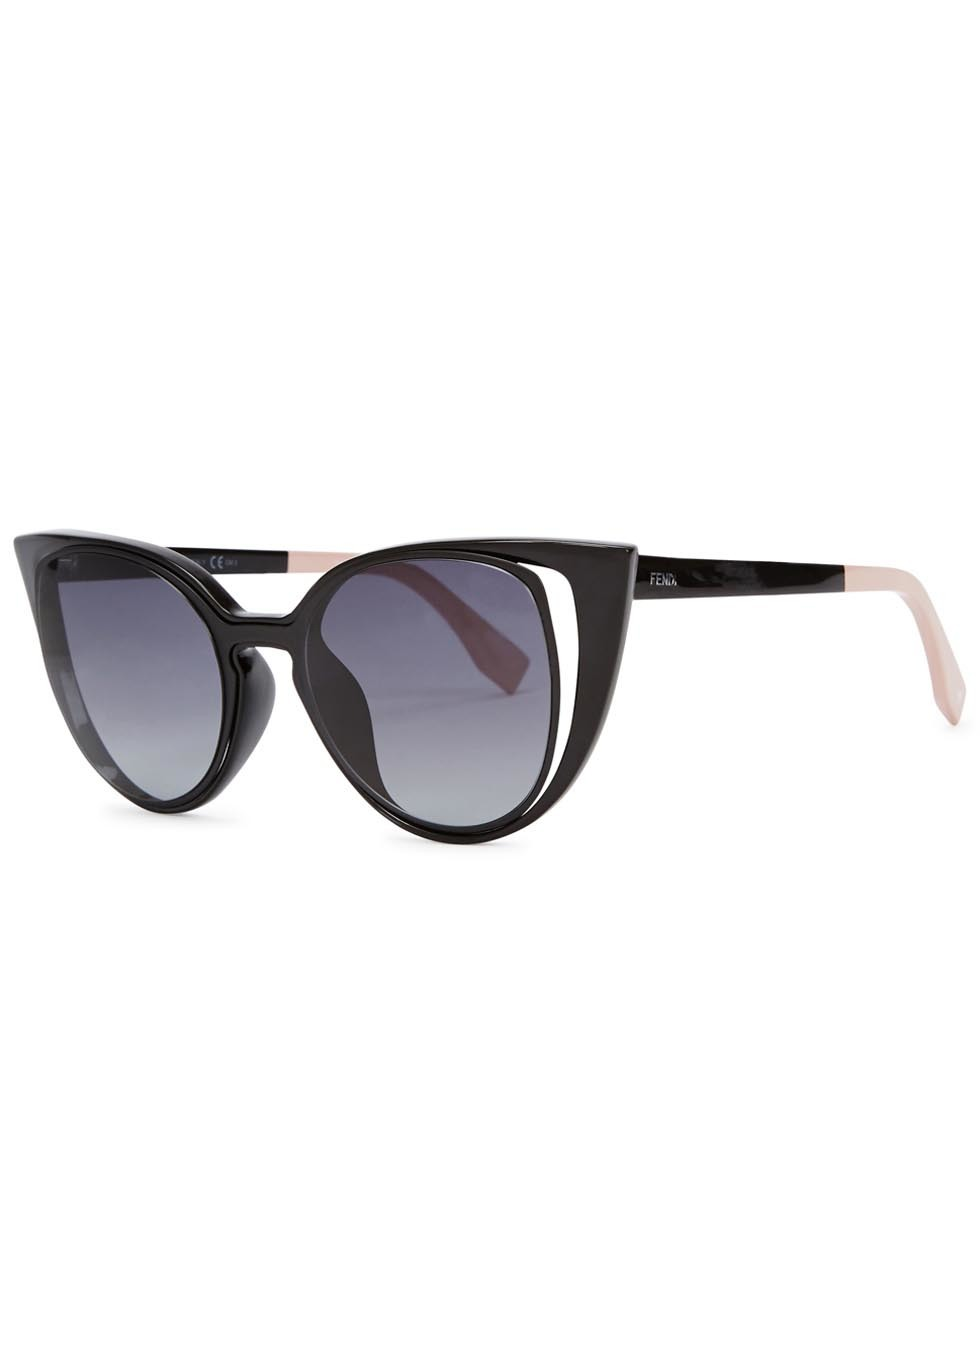 Black Cut Out Cat Eye Sunglasses - predominant colour: black; occasions: casual, holiday; style: cateye; size: large; material: plastic/rubber; pattern: plain; finish: plain; season: a/w 2015